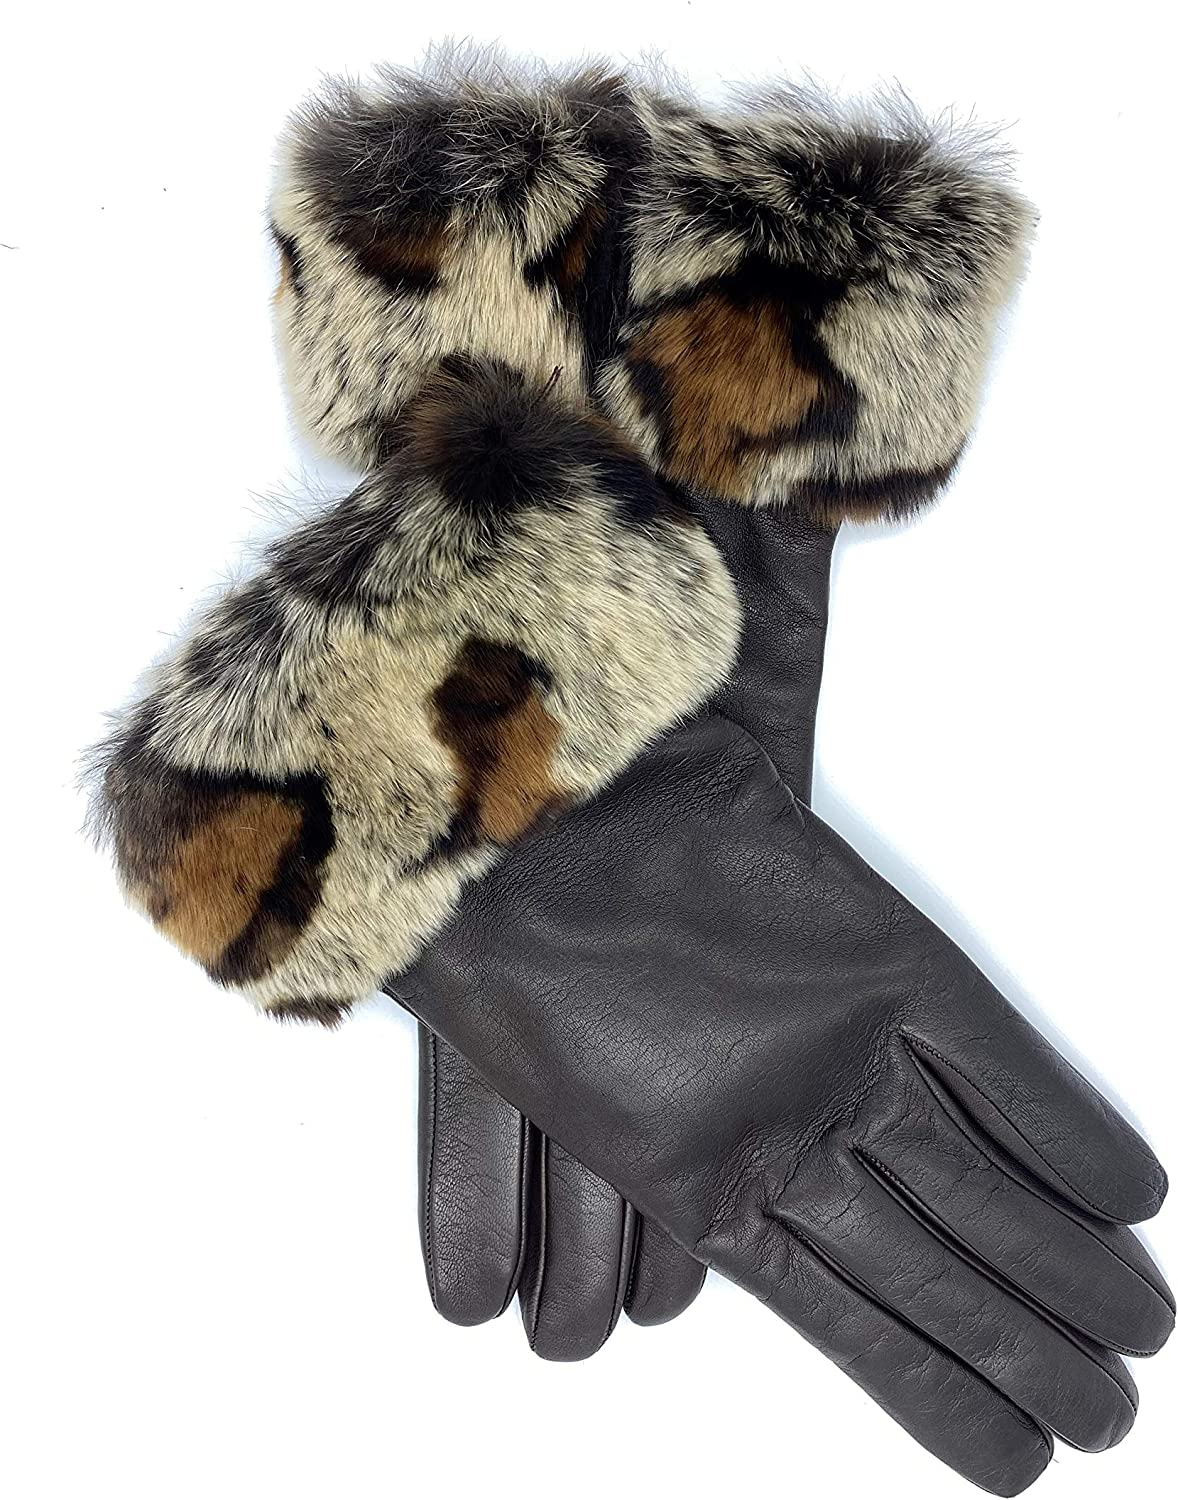 Women's Leather Gloves Made In Italy Rabbit Fur Cuff Cashmere Lined (Brown, M)